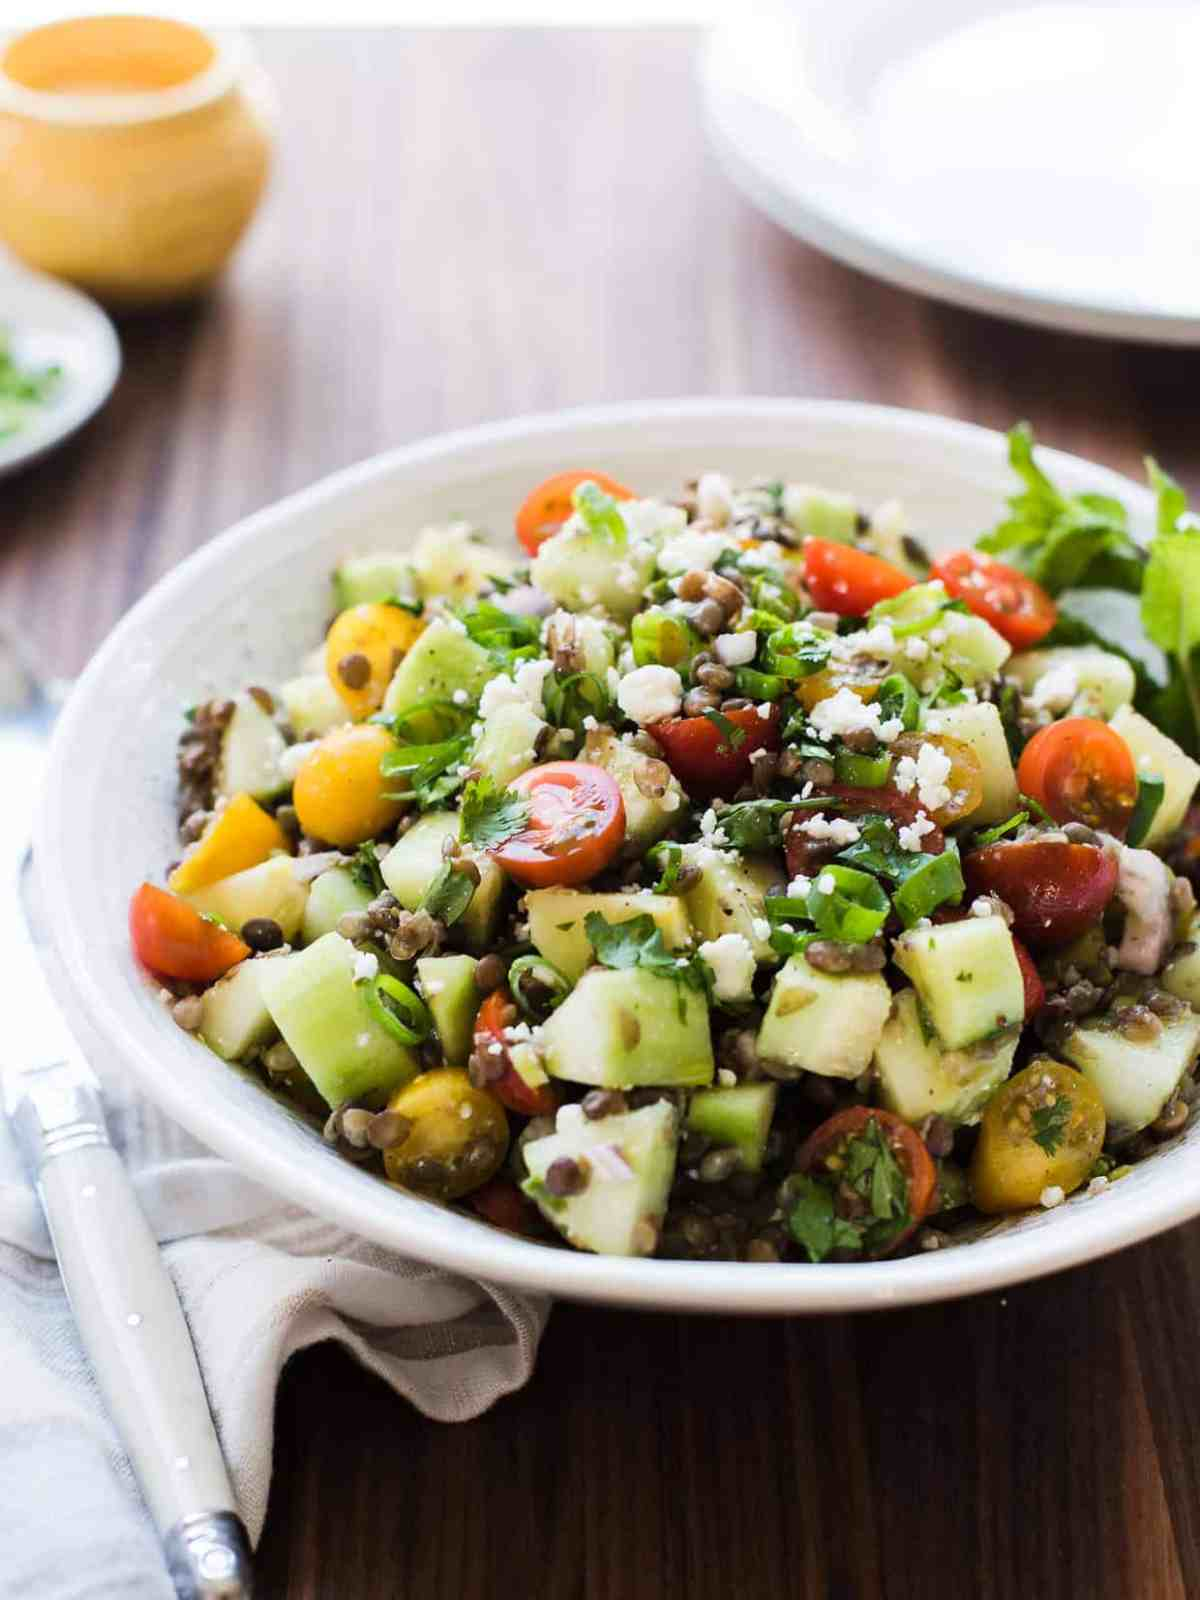 Summer Lentil Salad with lentils, cucumbers, tomatoes, and mint in a white bowl.